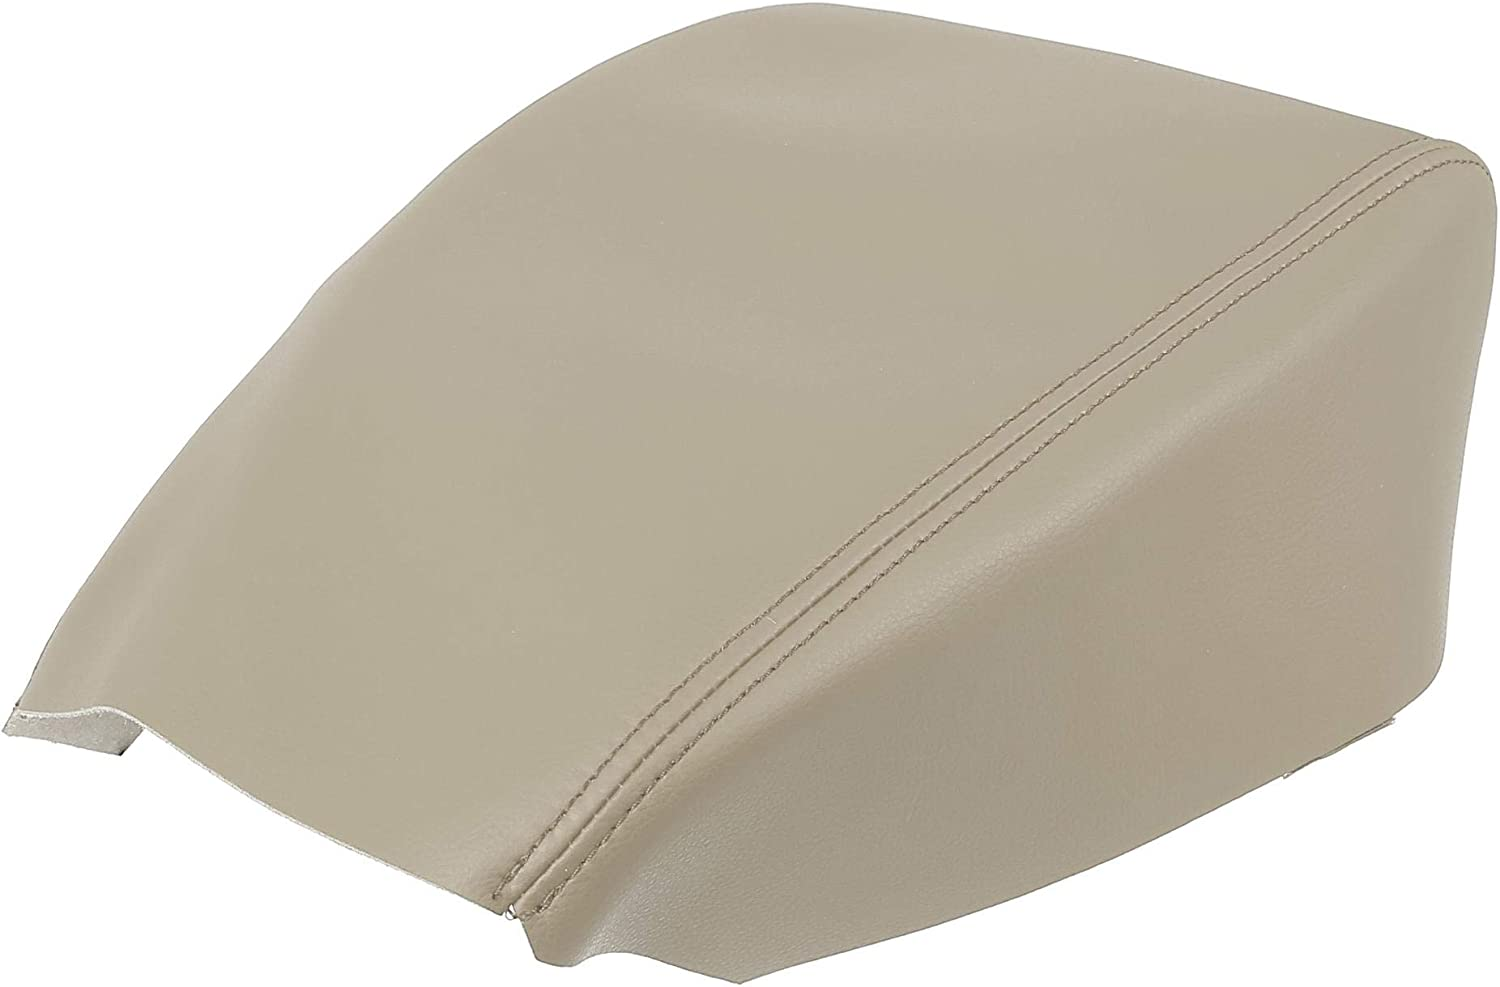 X AUTOHAUX Car Center Console Lid Armrest Pad Cover Protector Beige Microfiber Leather for Mazda CX5 2018-2020